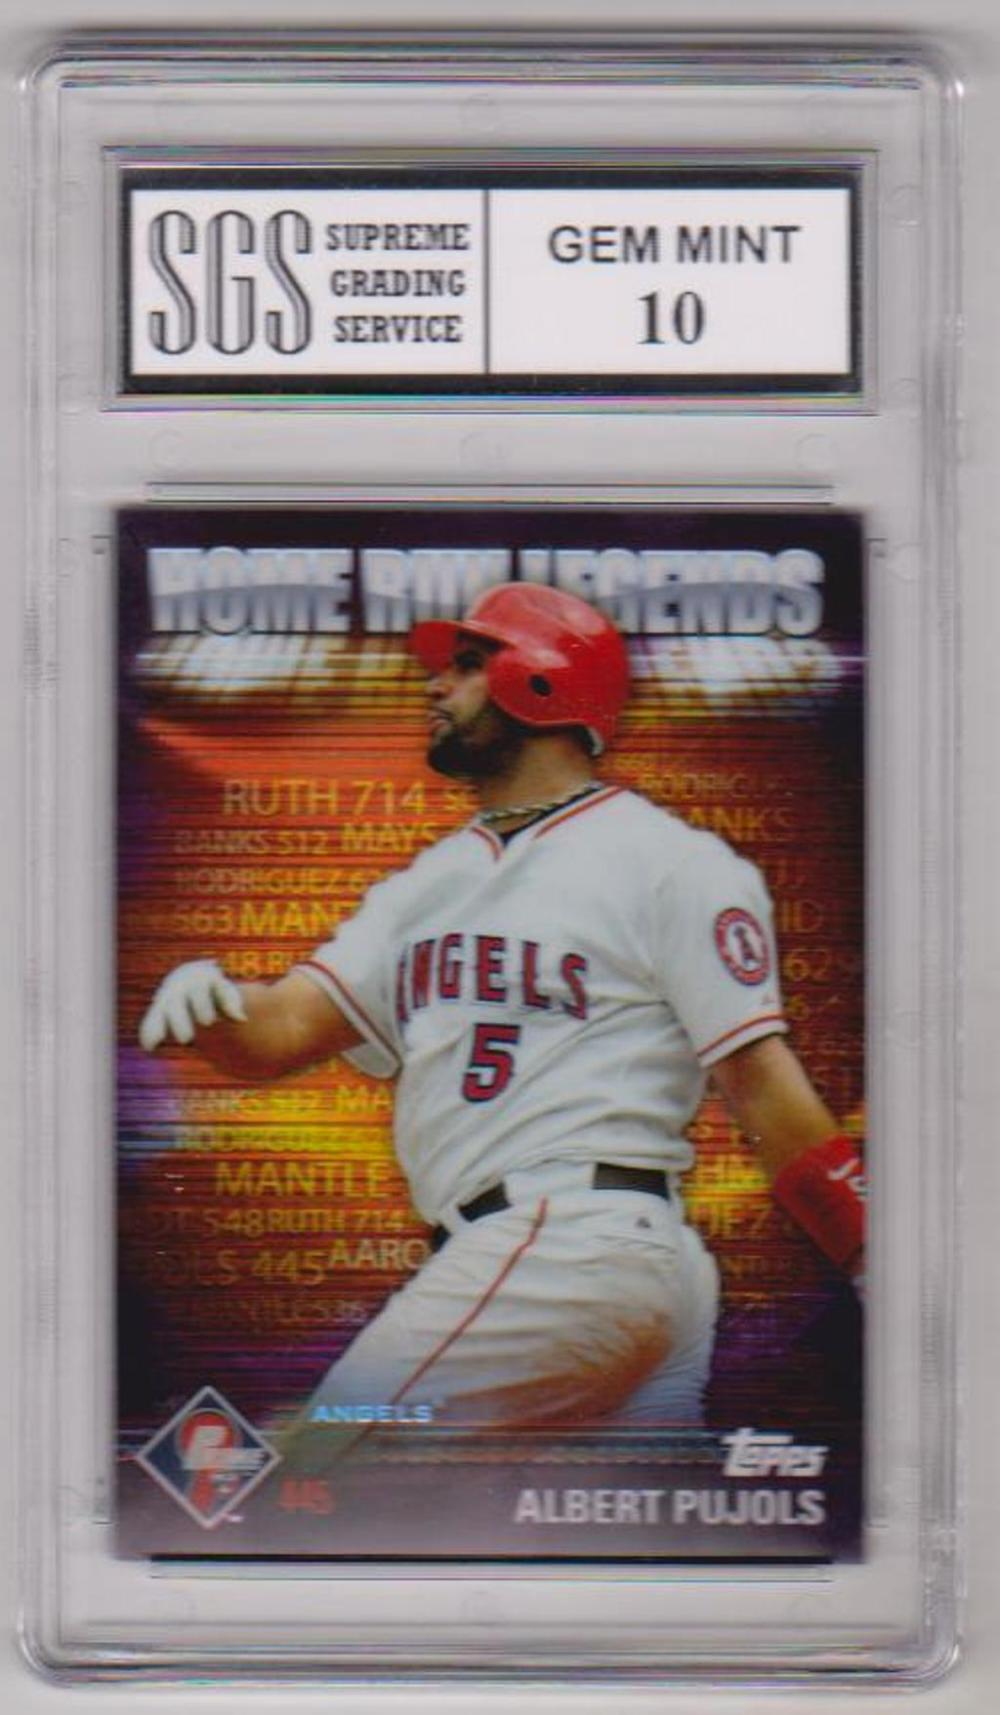 Graded Gem Mint 10 Albert Pujols 2012 Topps Prime 9 Home Run